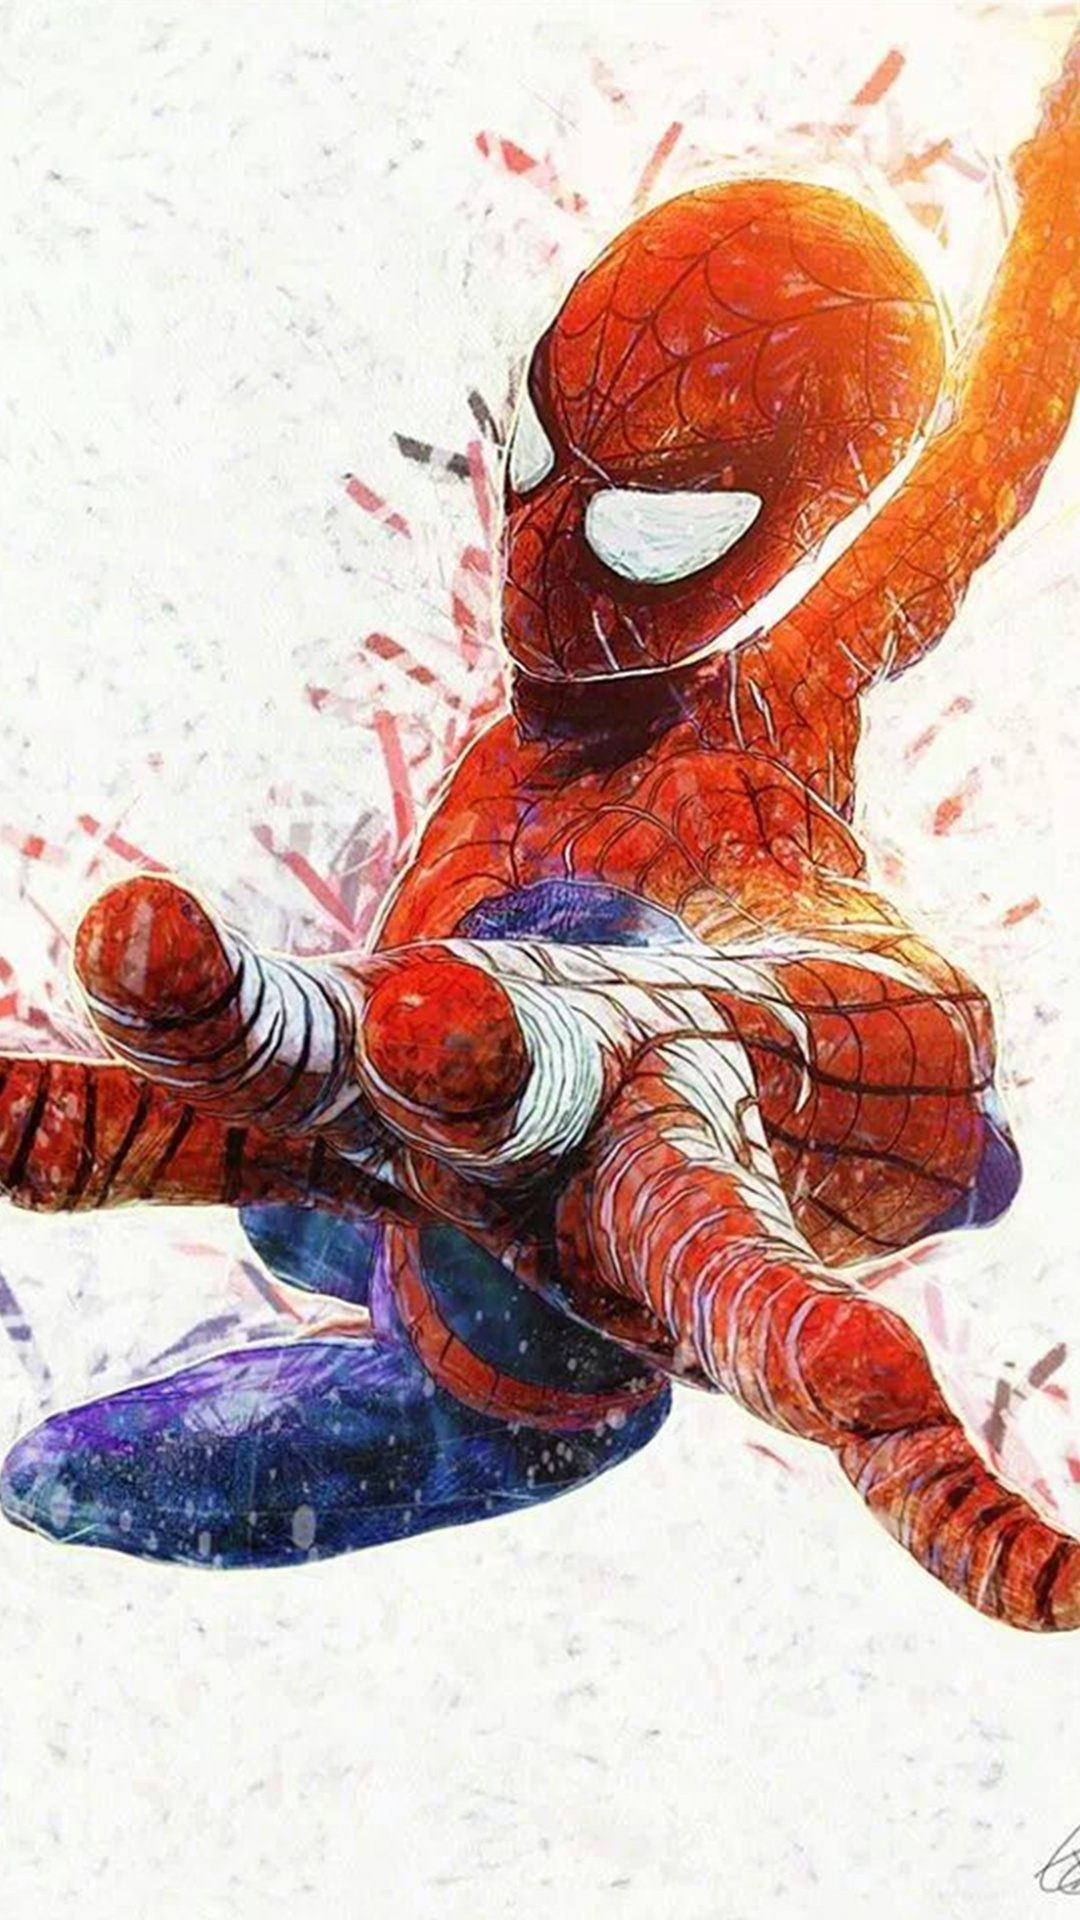 1080x1920 ... marvel iphone wallpaper marvel iphone wallpaper2 best images .